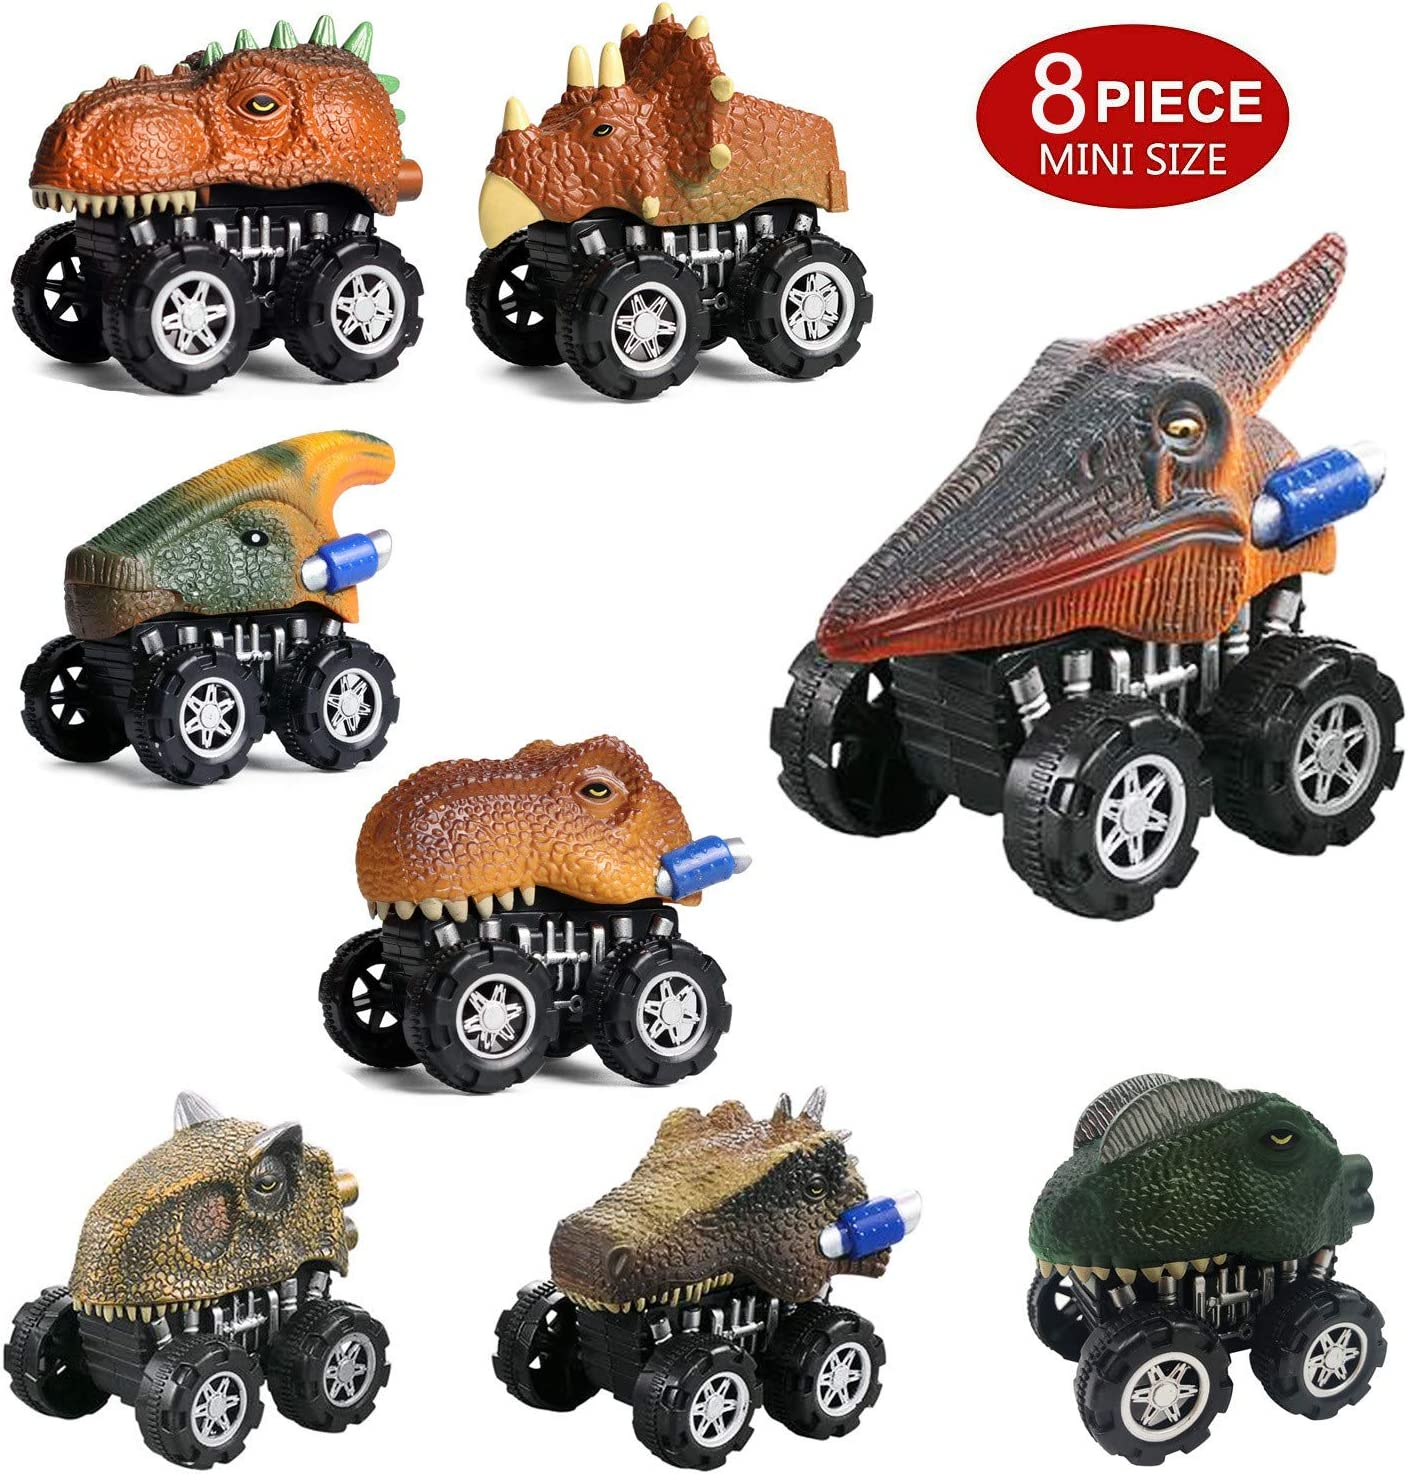 Amazon coupon code for Pull Back Dinosaur Cars 8 Pack Mini Dino Cars